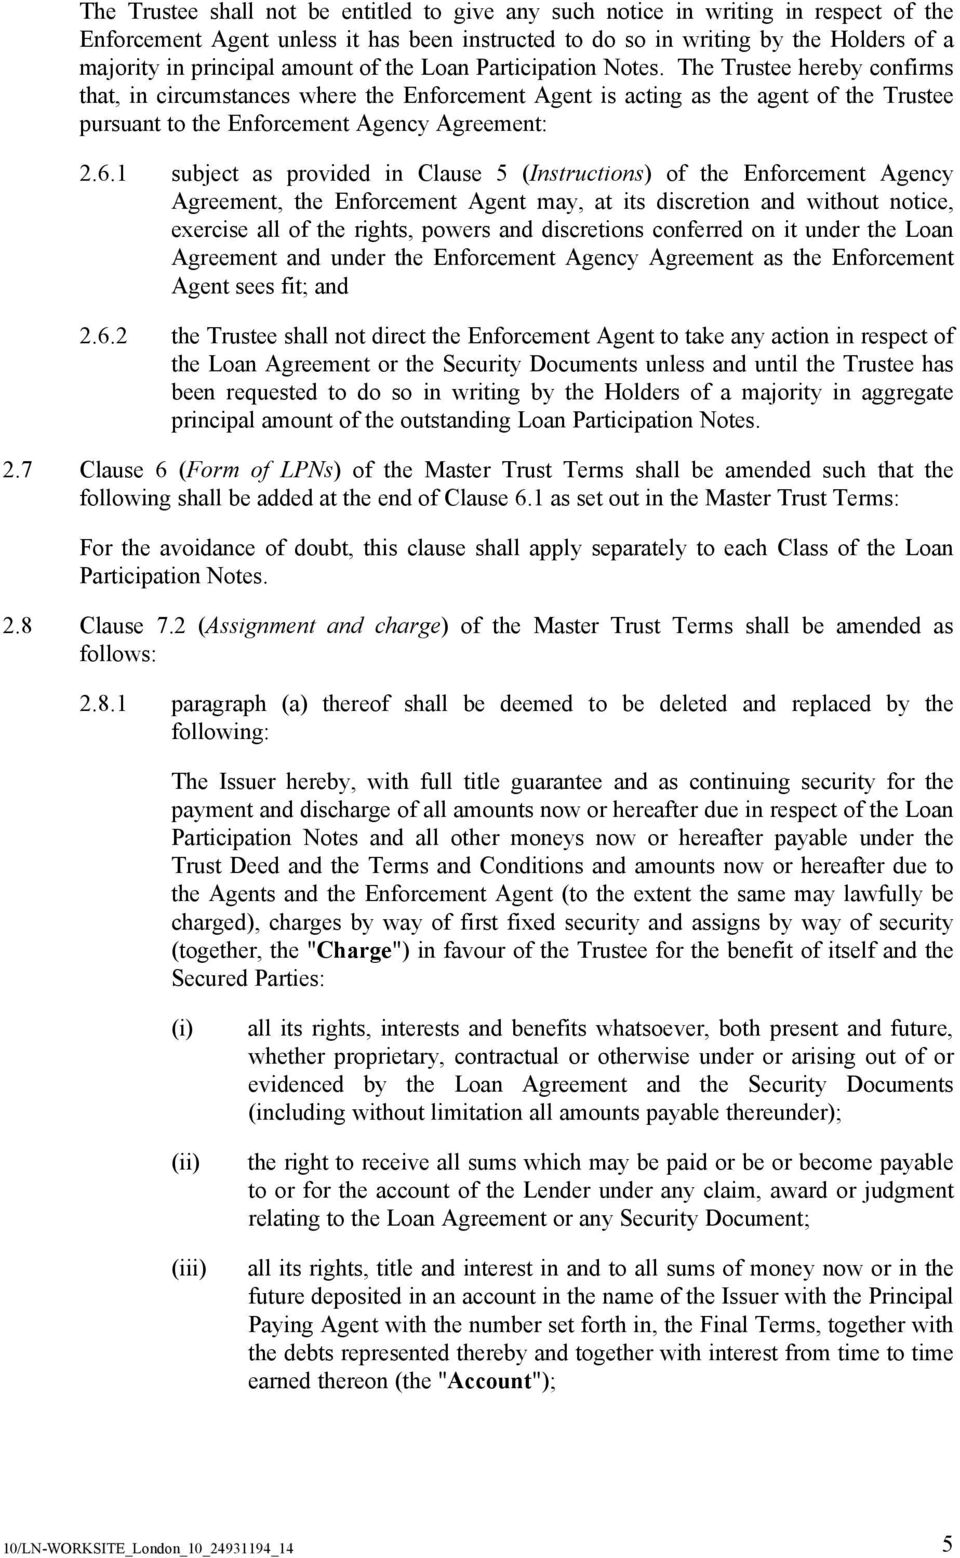 The Trustee hereby confirms that, in circumstances where the Enforcement Agent is acting as the agent of the Trustee pursuant to the Enforcement Agency Agreement: 2.6.